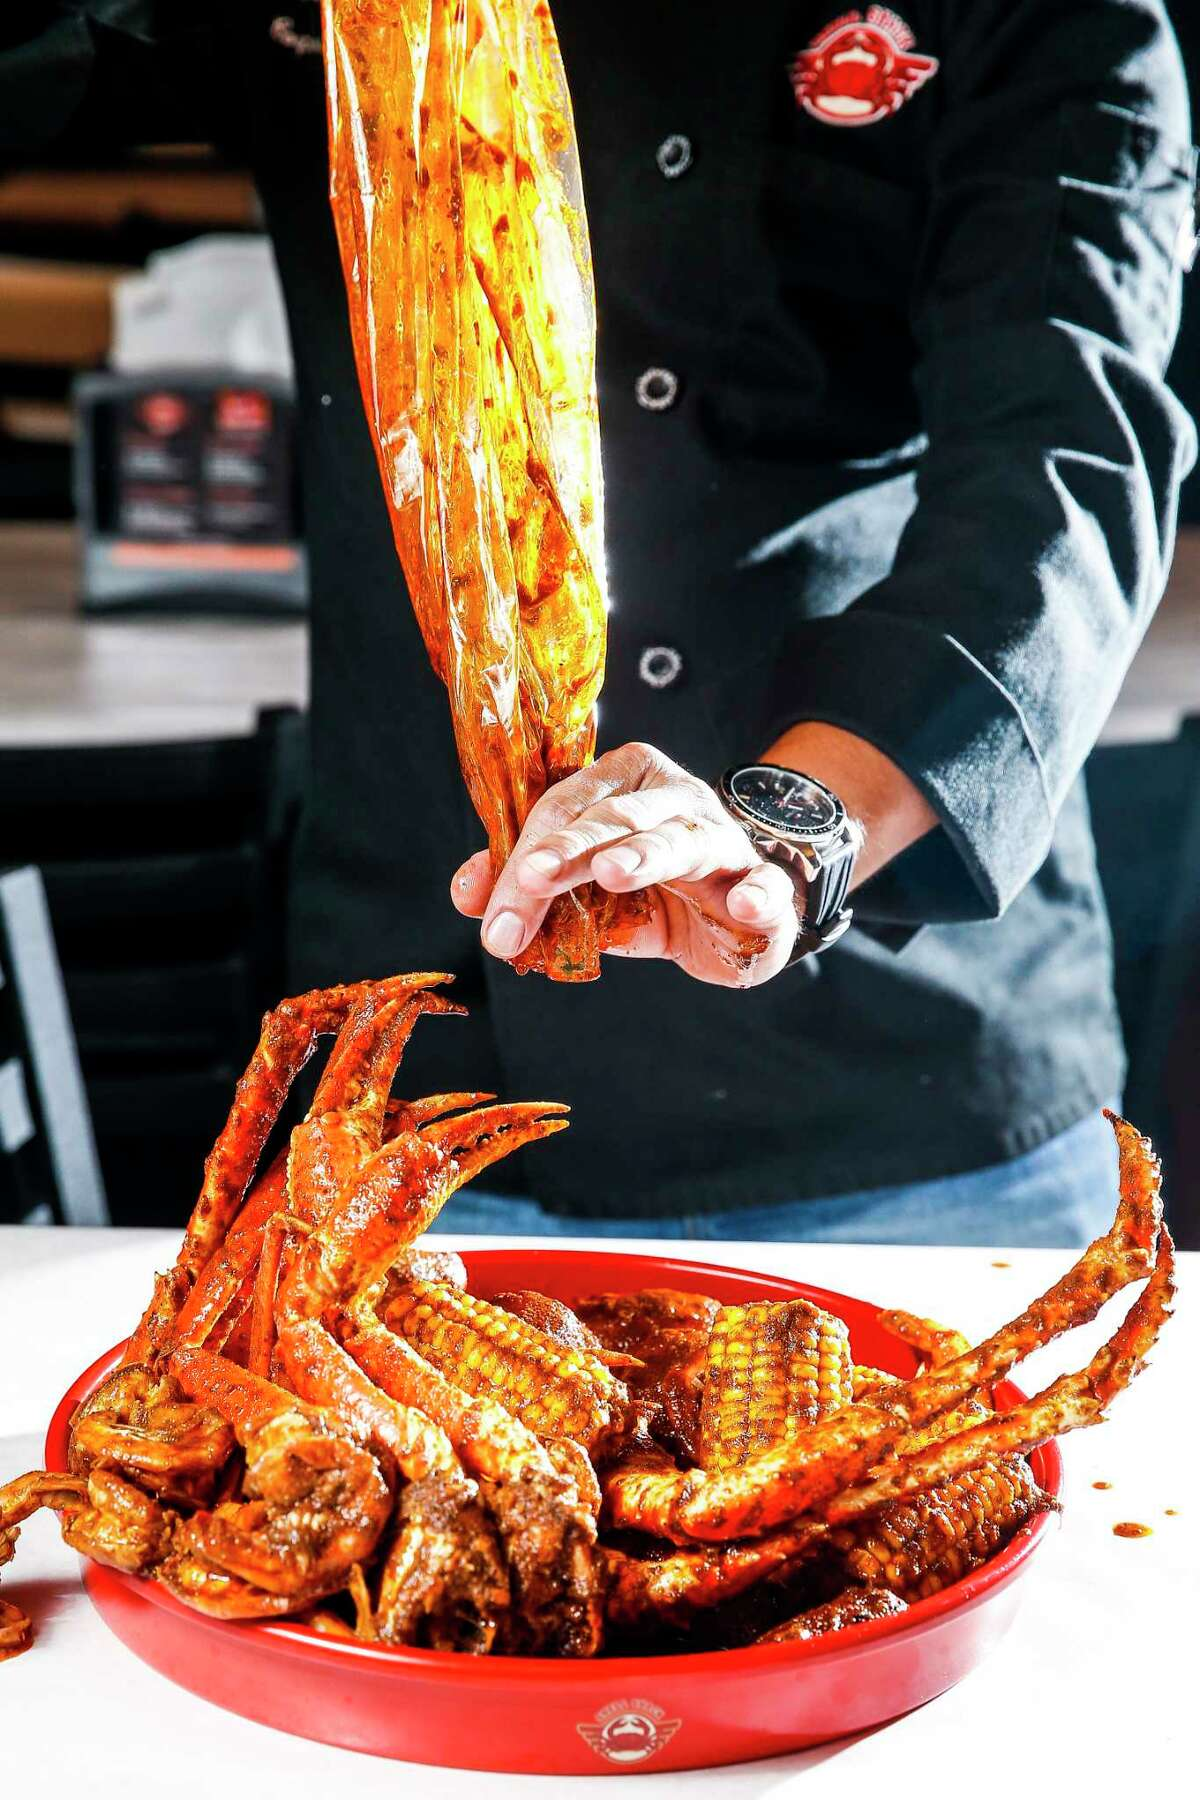 The Date Night platter at Dallas-based Shell Shack's new location on Washington Avenue has one pound of snow crab, one pound of boiled shrimp, one pound of king crab, four pieces of corn, six potatoes and six pieces of sausage. The seafood dinner is brought to the table in a seasoning bag.